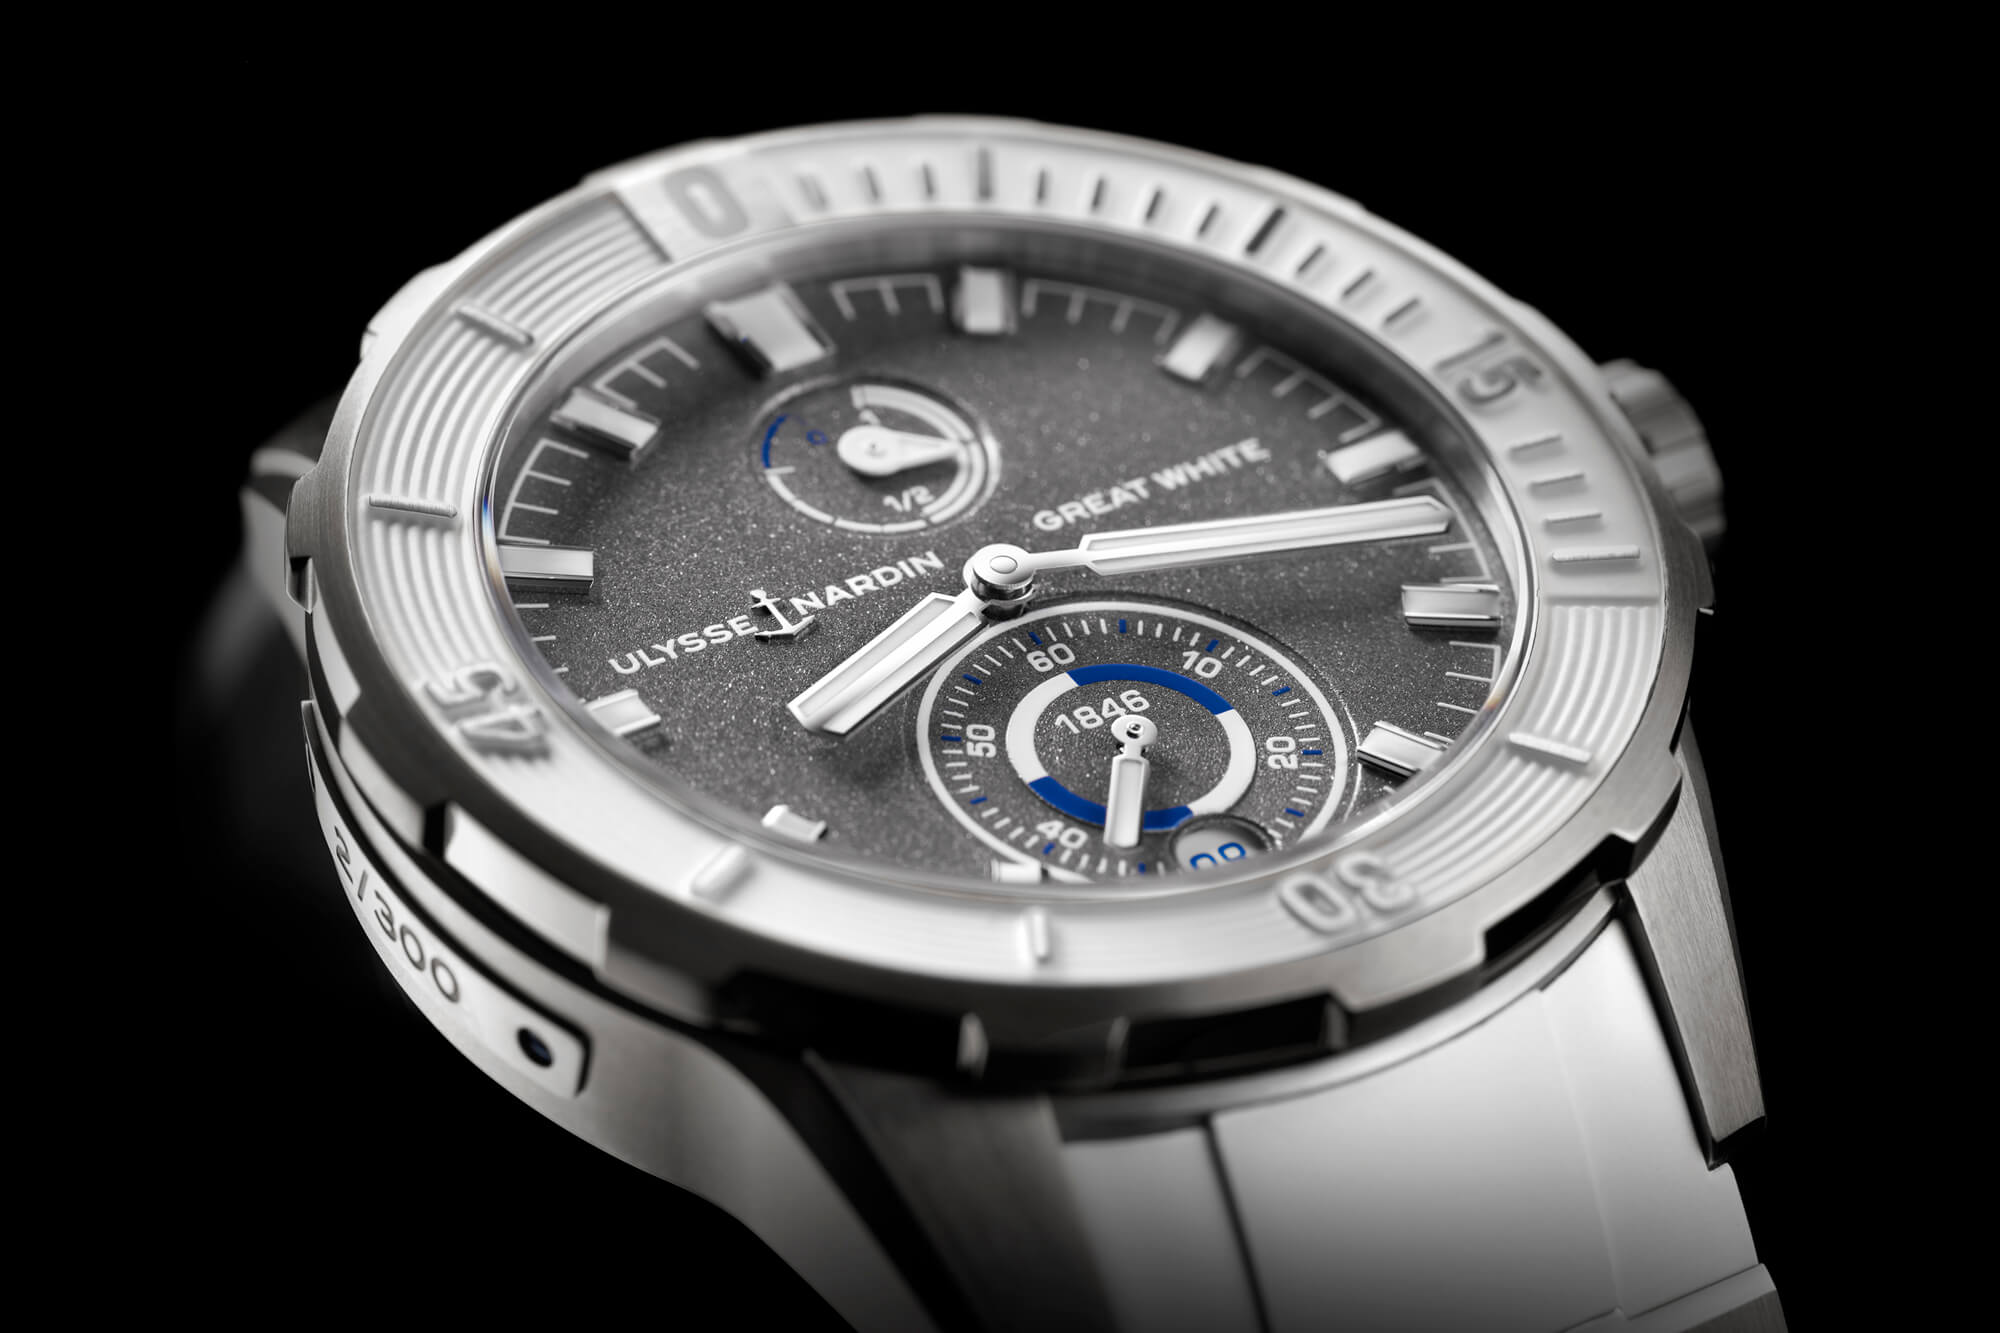 Ulysse Nardin Diver Chronometer Great White Limited Edition